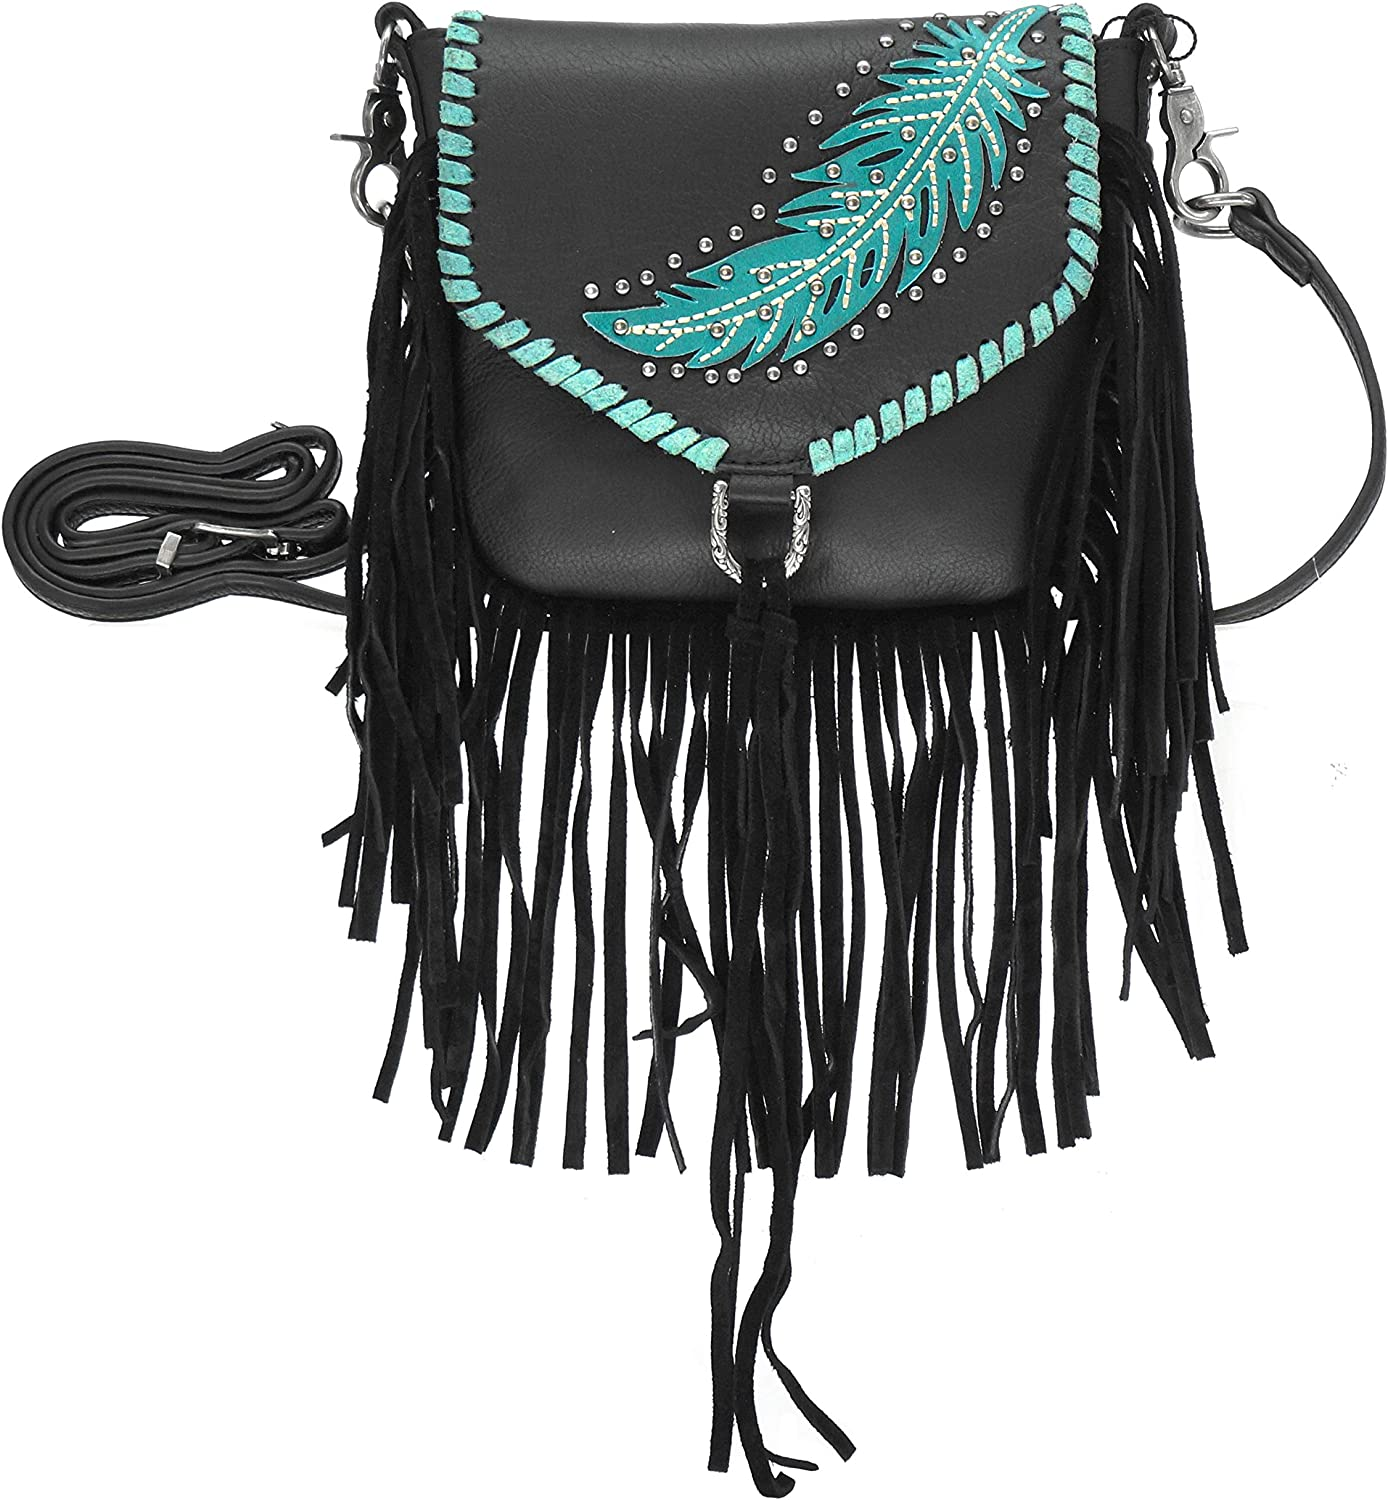 Montana West Embroidered Collection Concealed Carry Crossbody Bag// Wallet